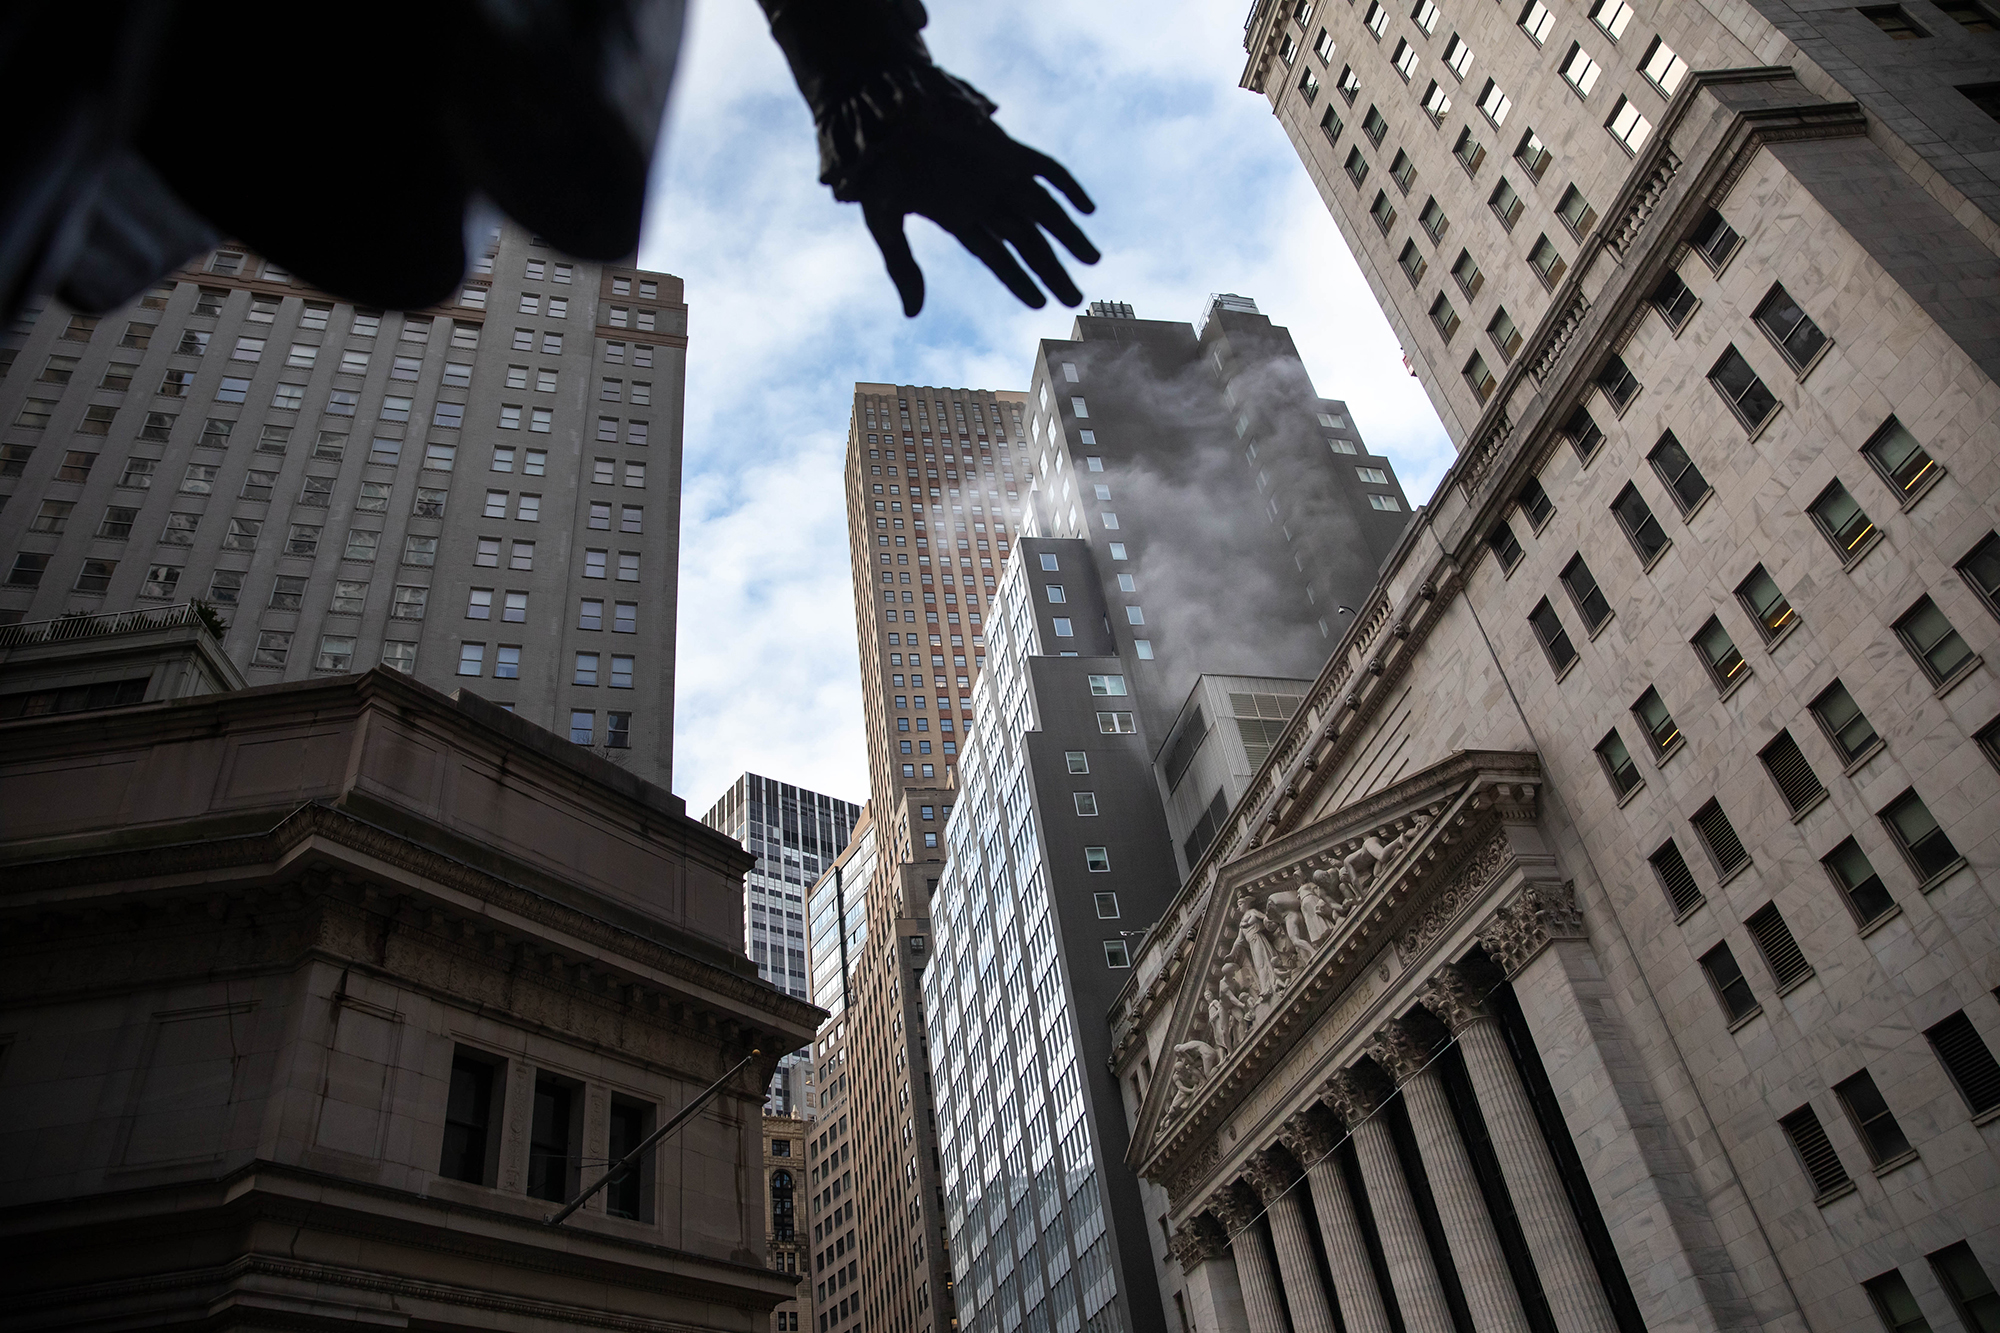 Corporate earnings don't look great. But the drought may be over soon